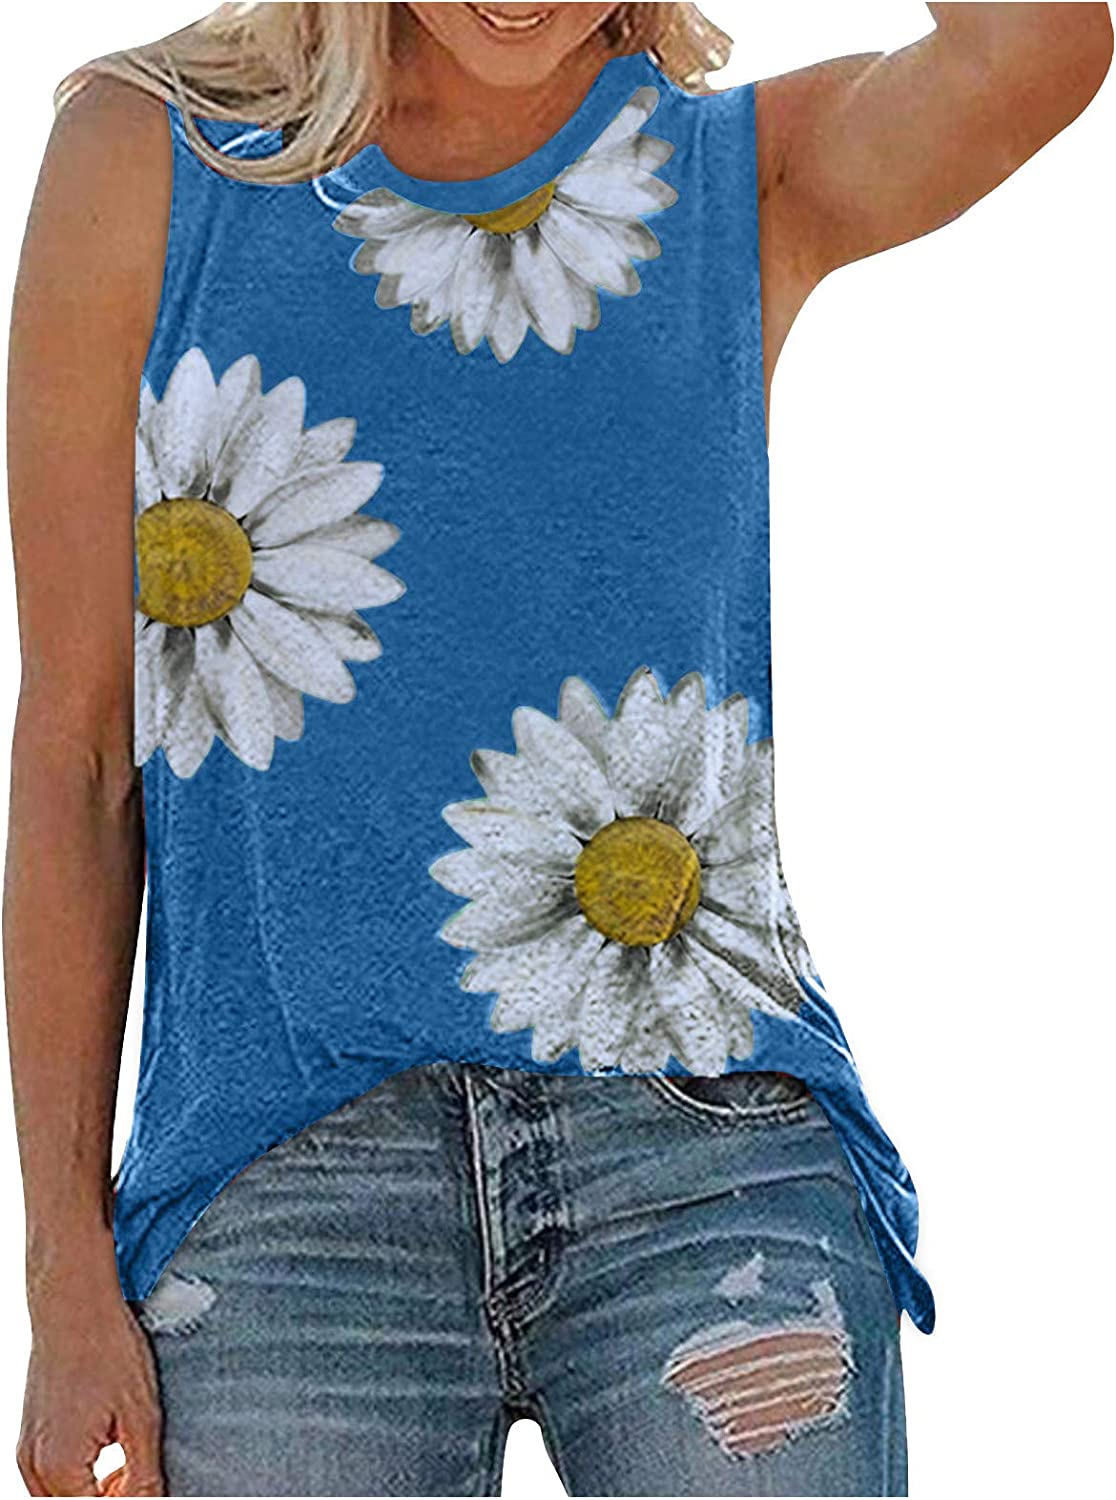 Gerichy Summer Tank Tops for Women, Womens Summer Tops Casual Graphic Tank Tops Loose Fit Sleeveless Tee Shirts Tops